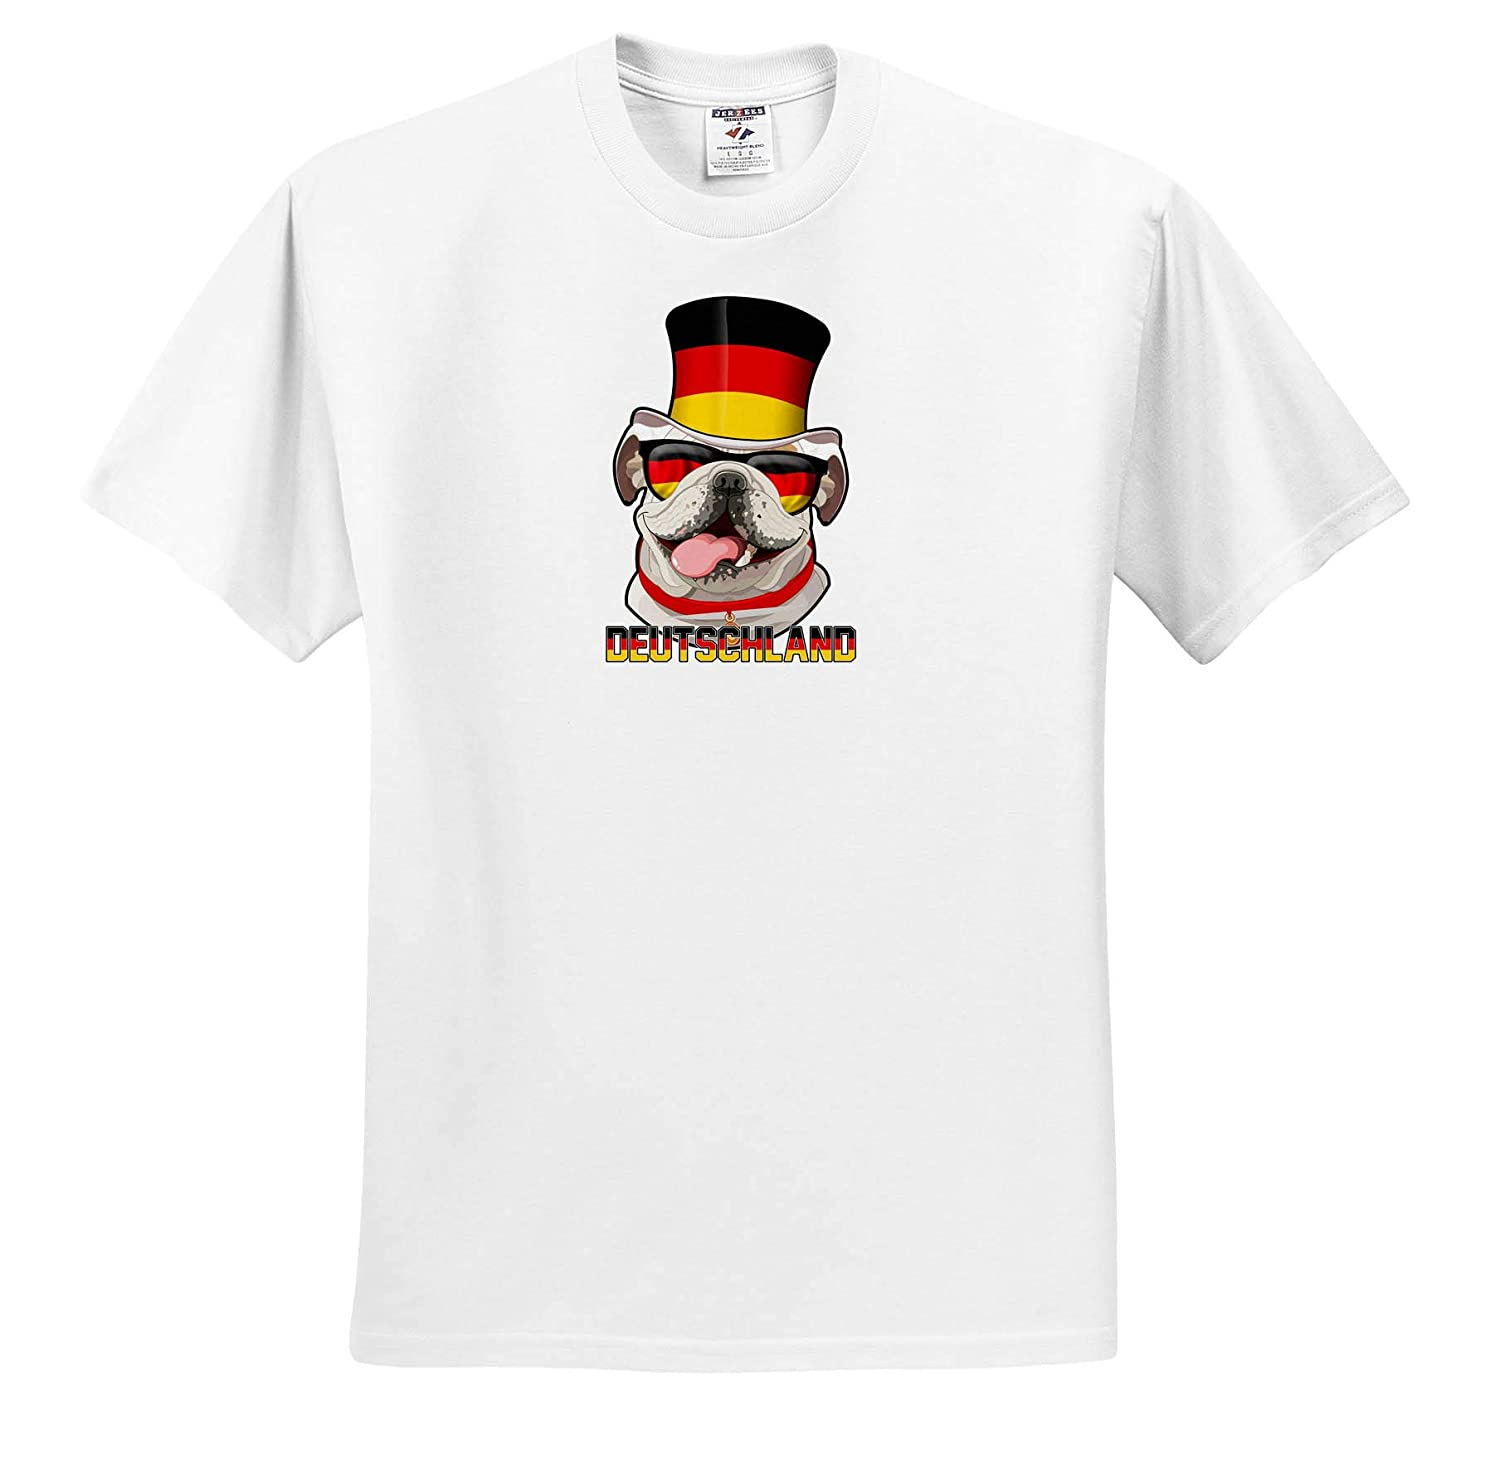 T-Shirts Germany English Bulldog with German Flag Top Hat and Sunglasses Illustrations 3dRose Carsten Reisinger